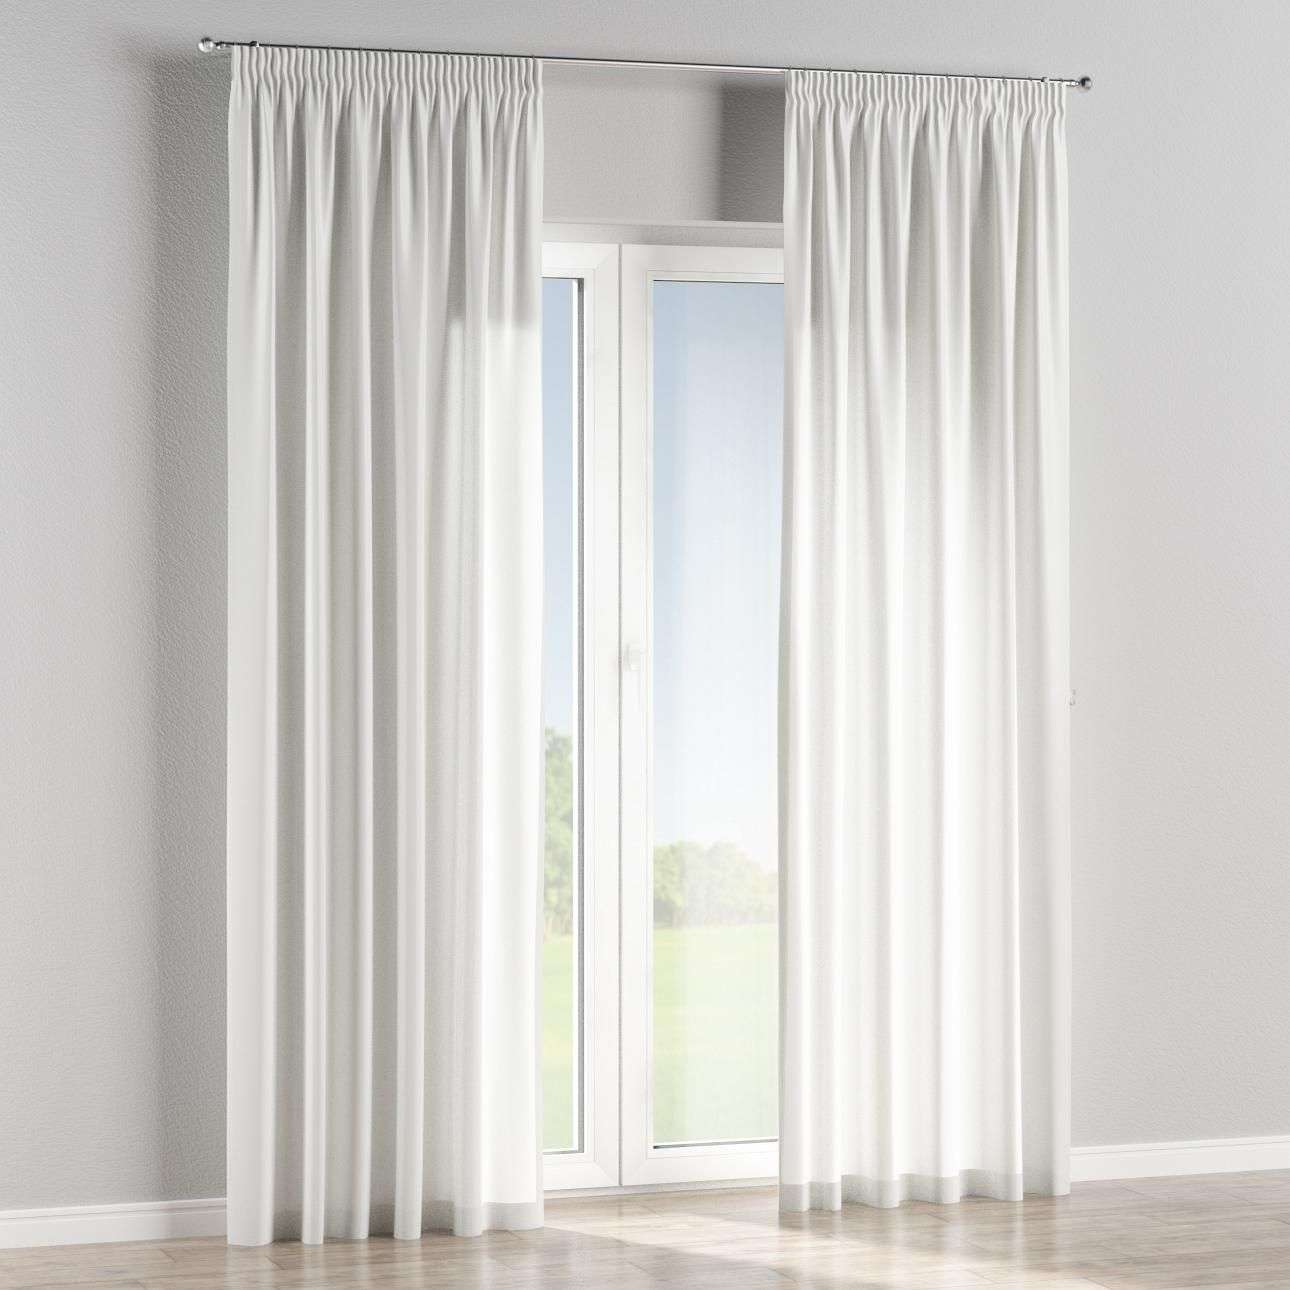 Pencil pleat curtains in collection Christmas , fabric: 630-17